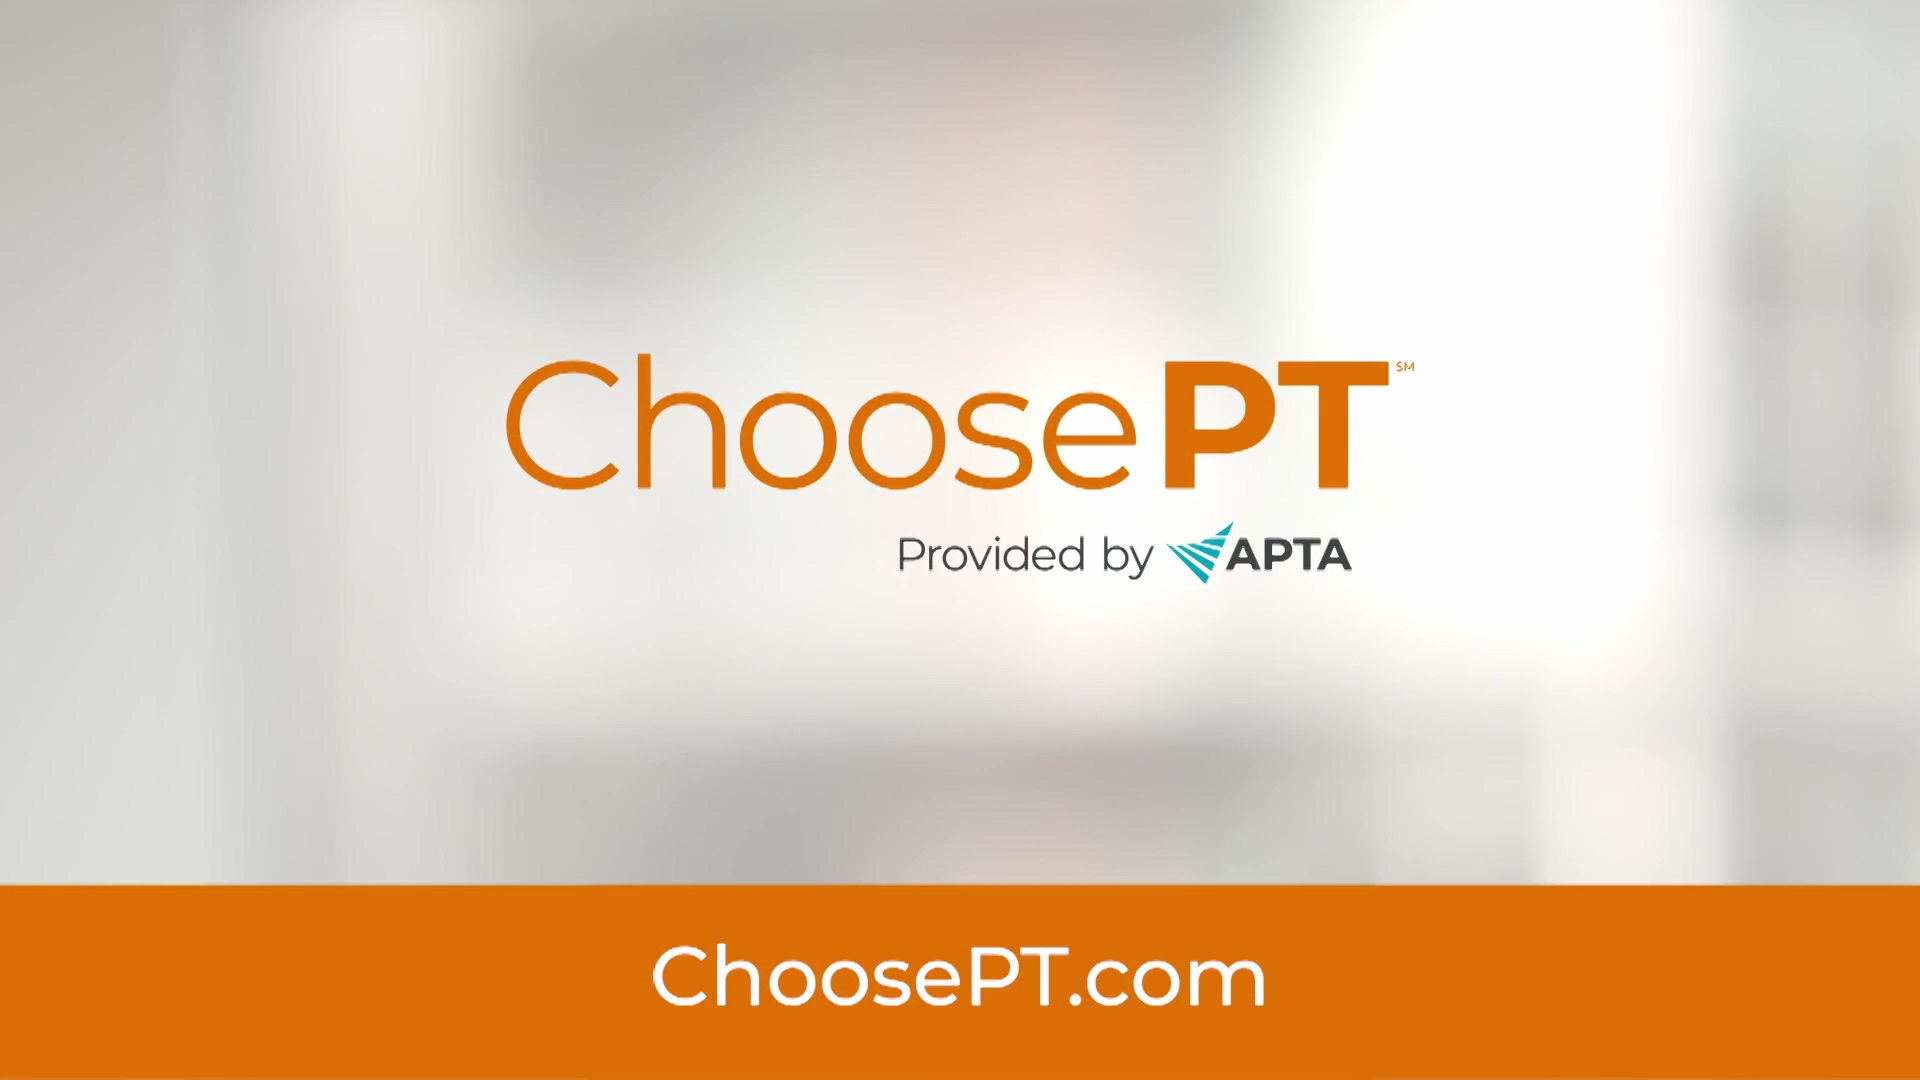 ChoosePT PSA Video_Physical Activity Improves Health and Quality of Life-1